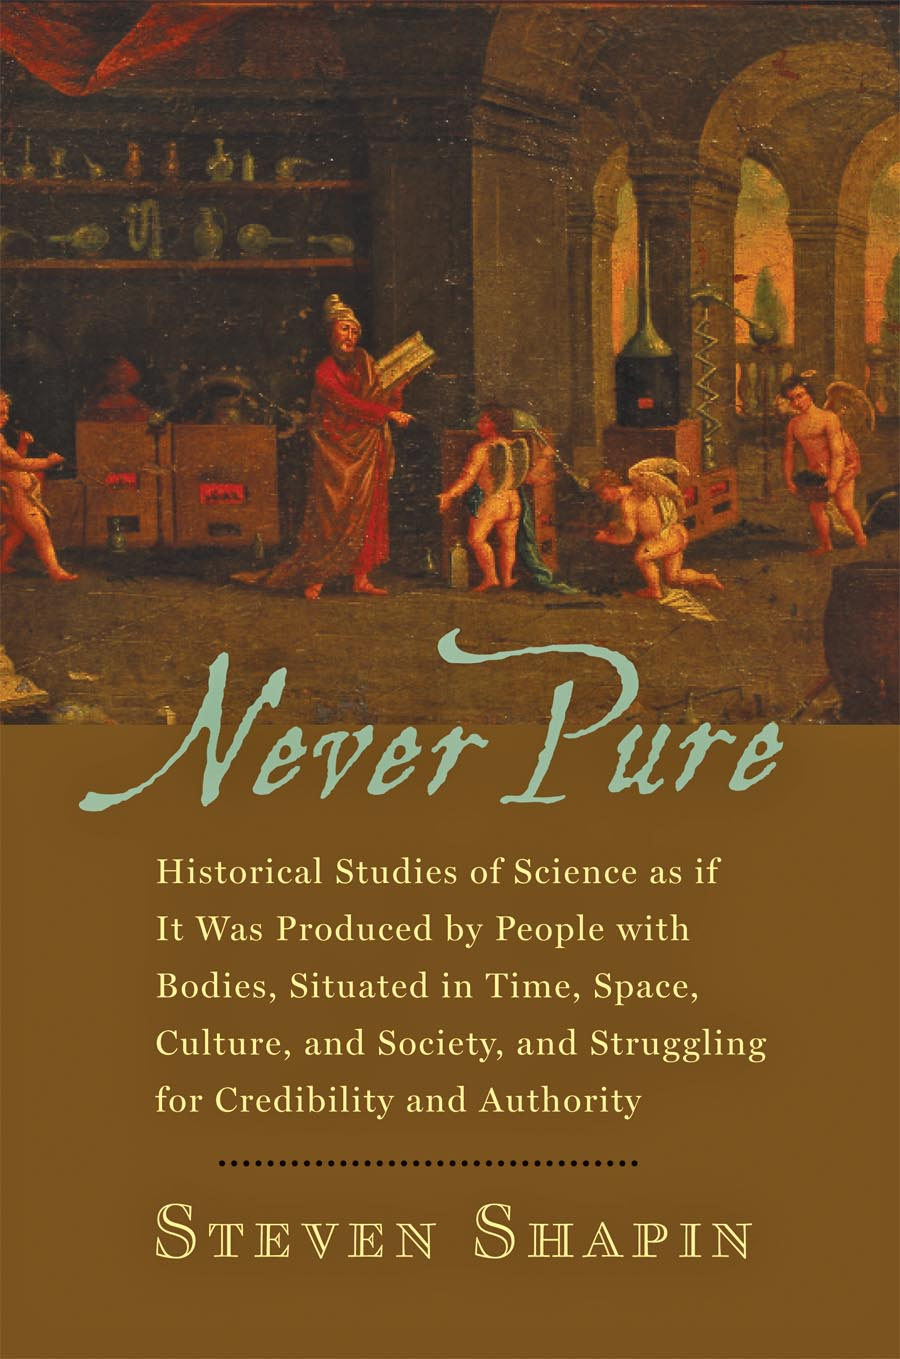 Never Pure – Historical Studies of Science as if It Was Produced by People with Bodies, Situated in Time Space, Culture, and Society, and Struggling themes in greek society and culture